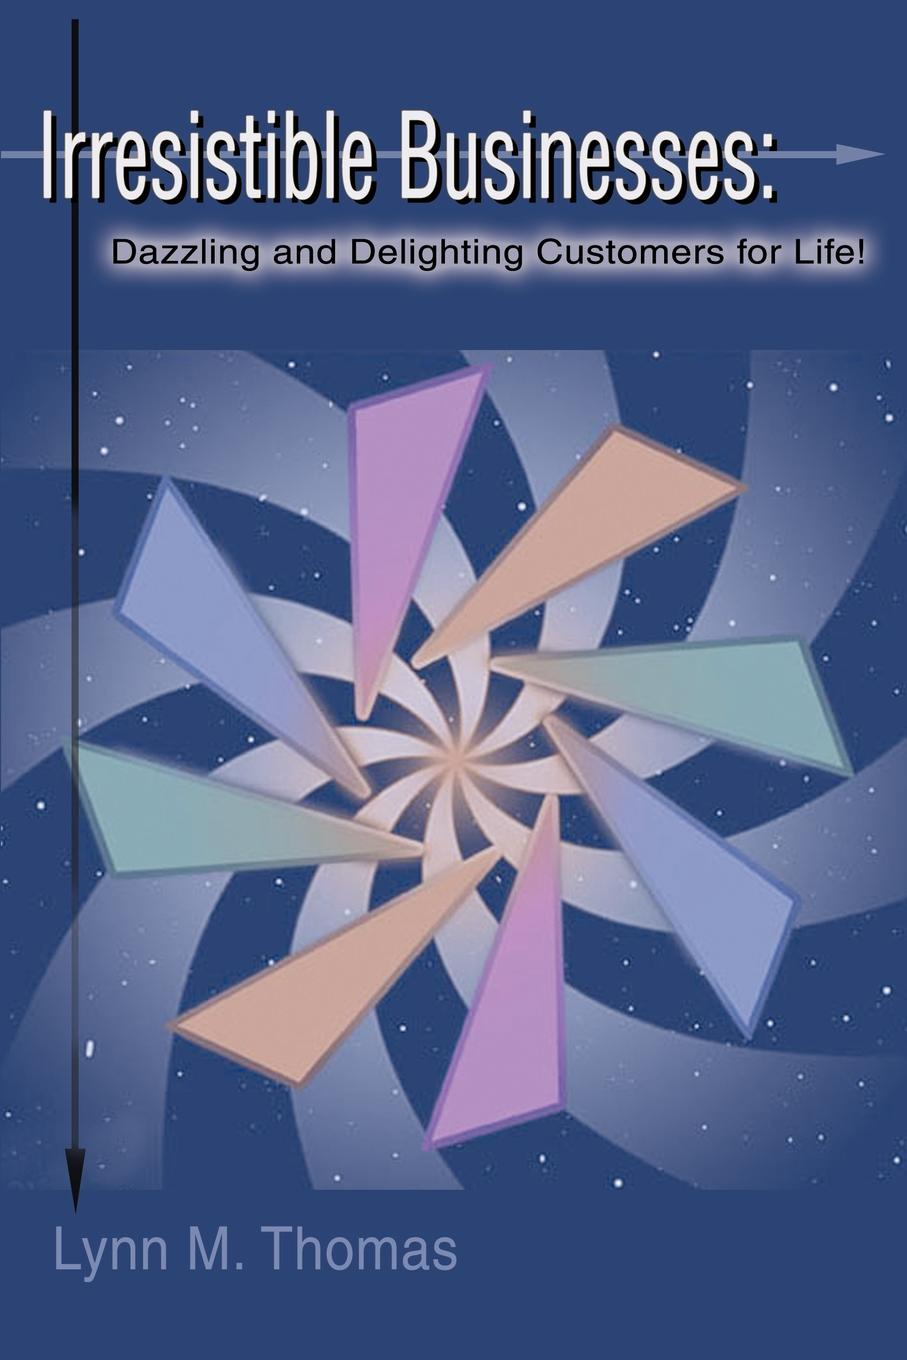 Lynn M. Thomas Irresistible Businesses. Dazzling and Delighting Customers for Life.